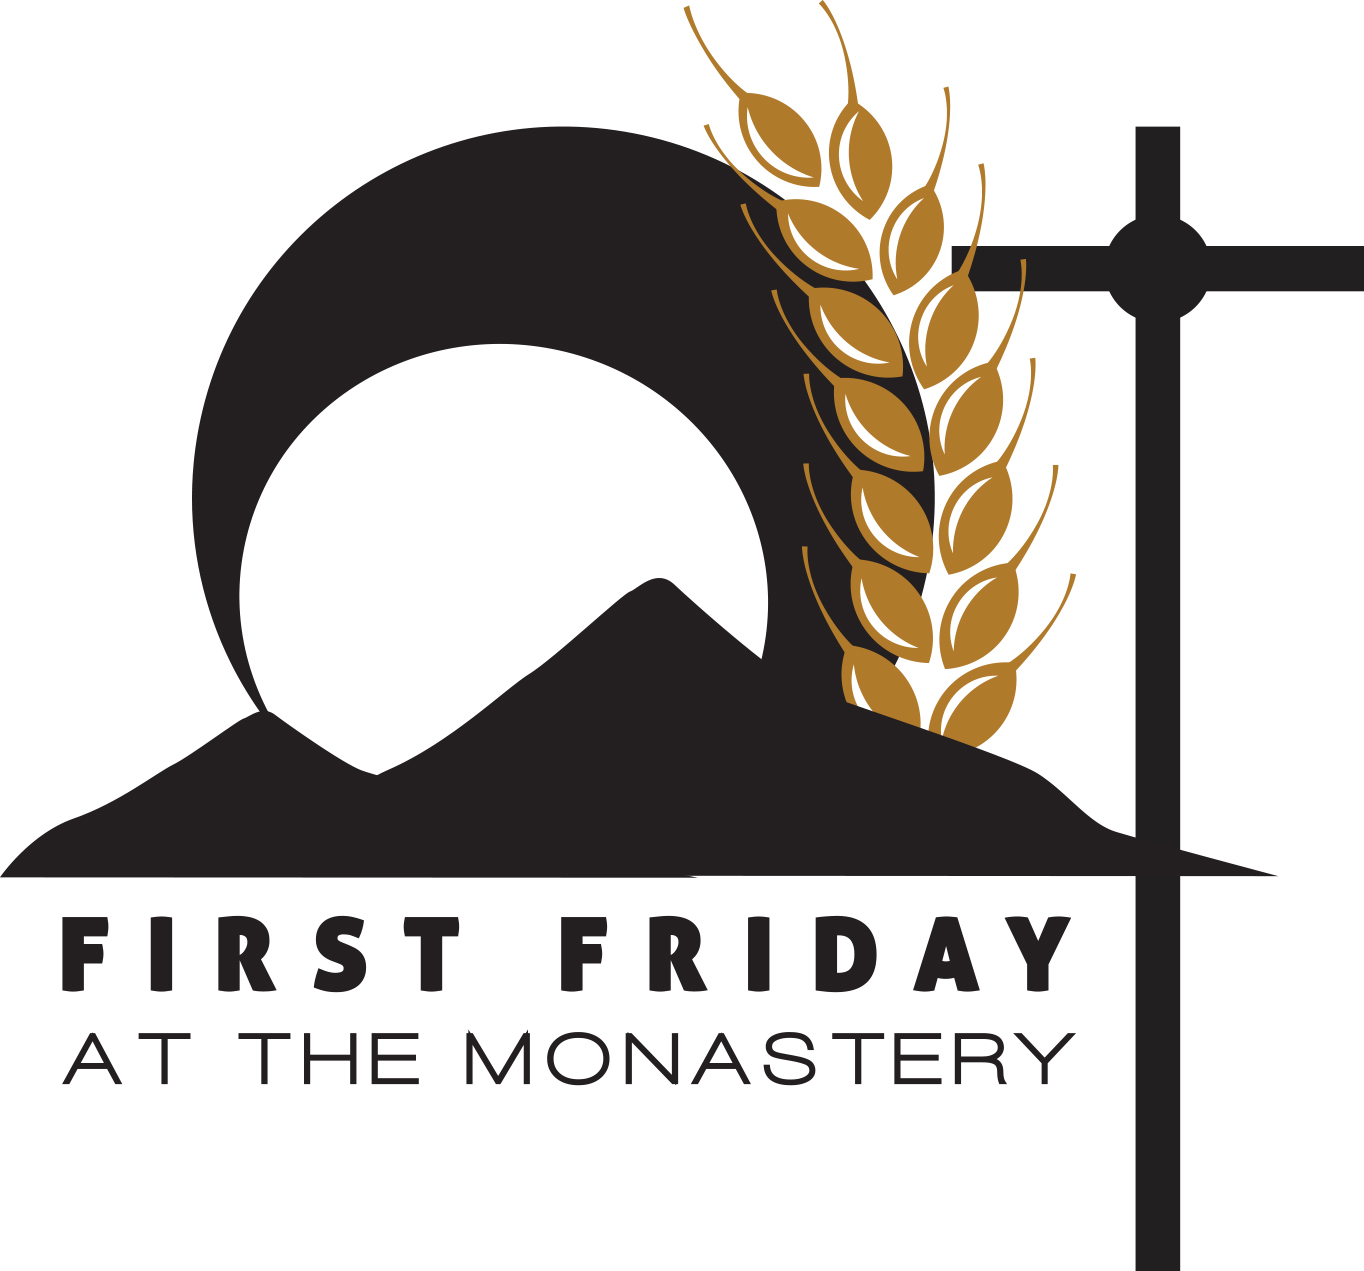 First Friday at the Monastery - JULY 2016